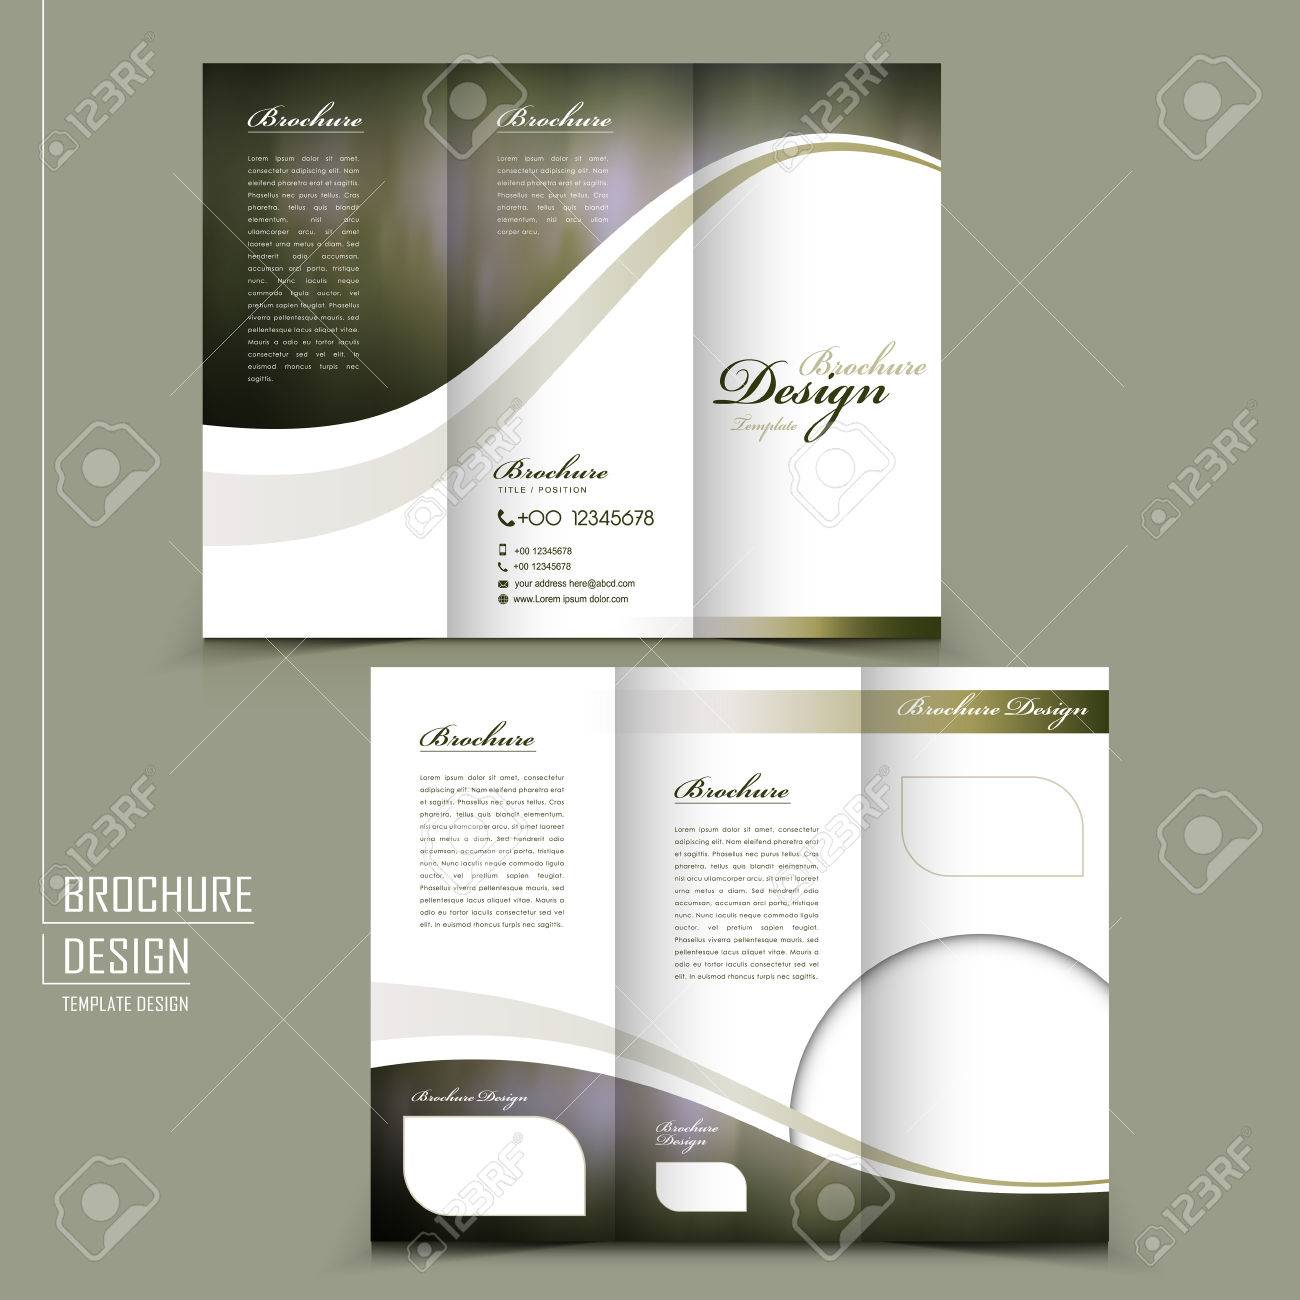 graceful tri fold brochure template design in elegant golden